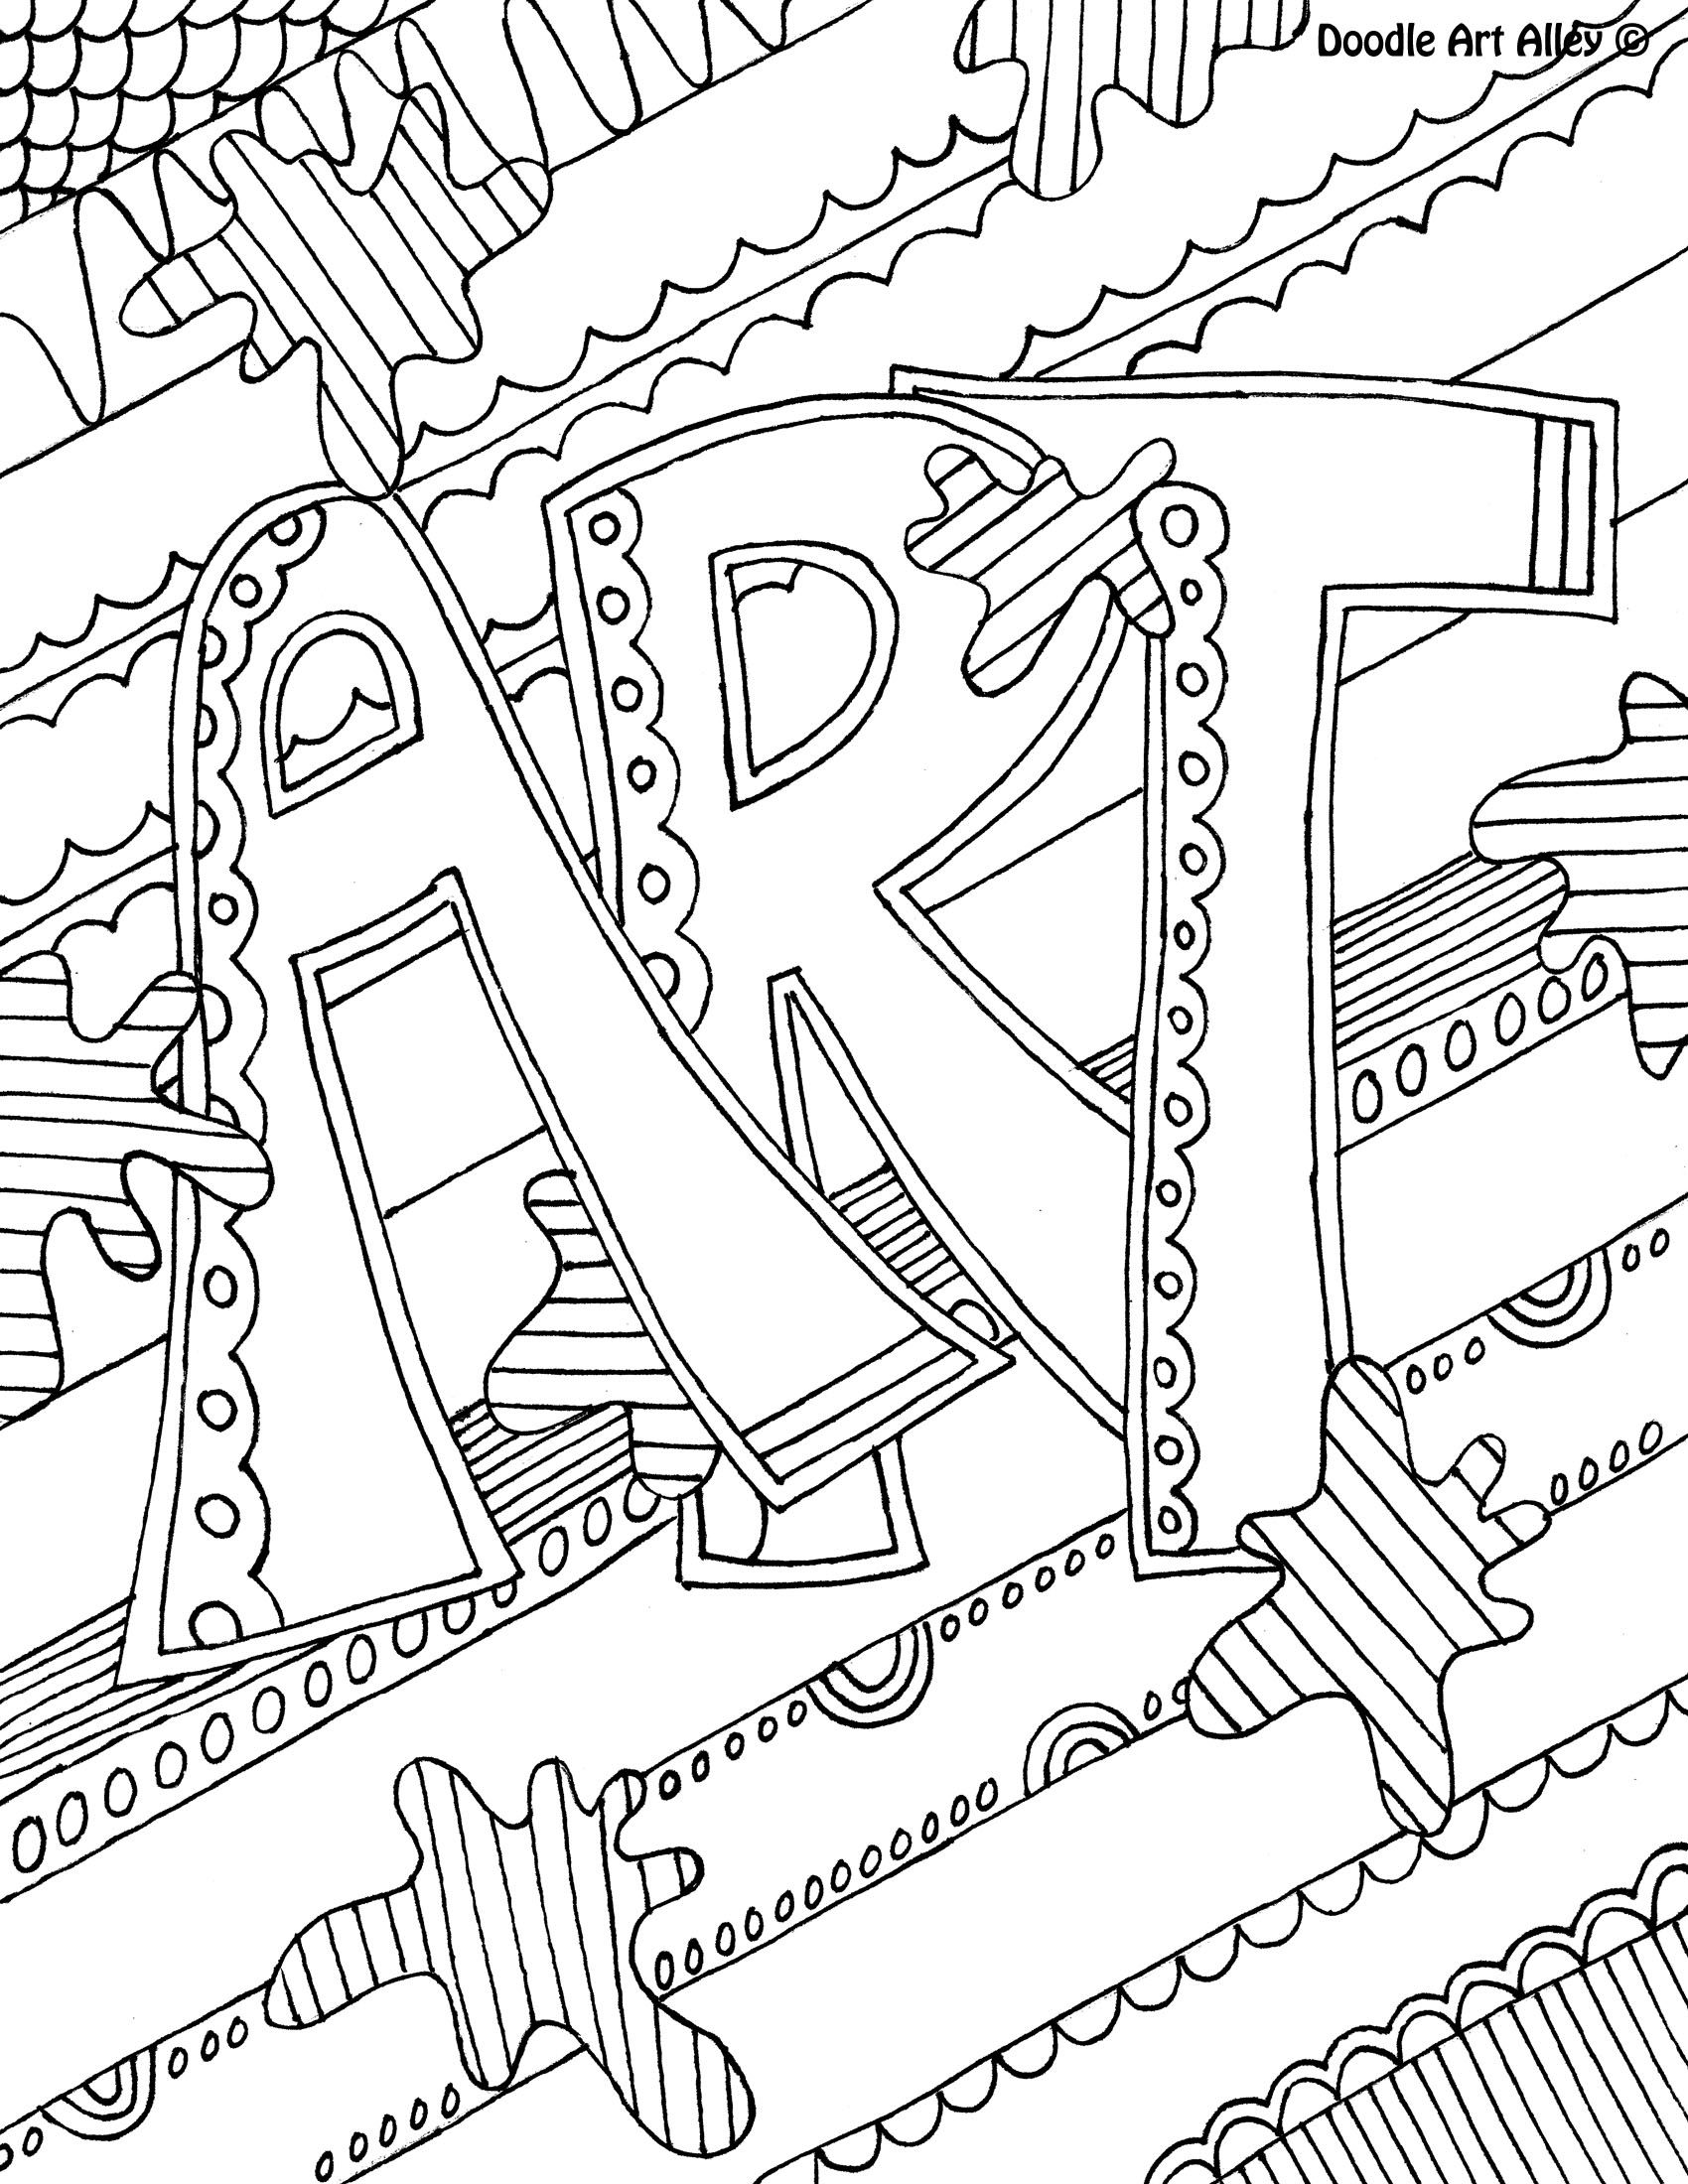 Coloring Book Doodle Art Alley Coloring Books Coloring Pages Colouring Pages